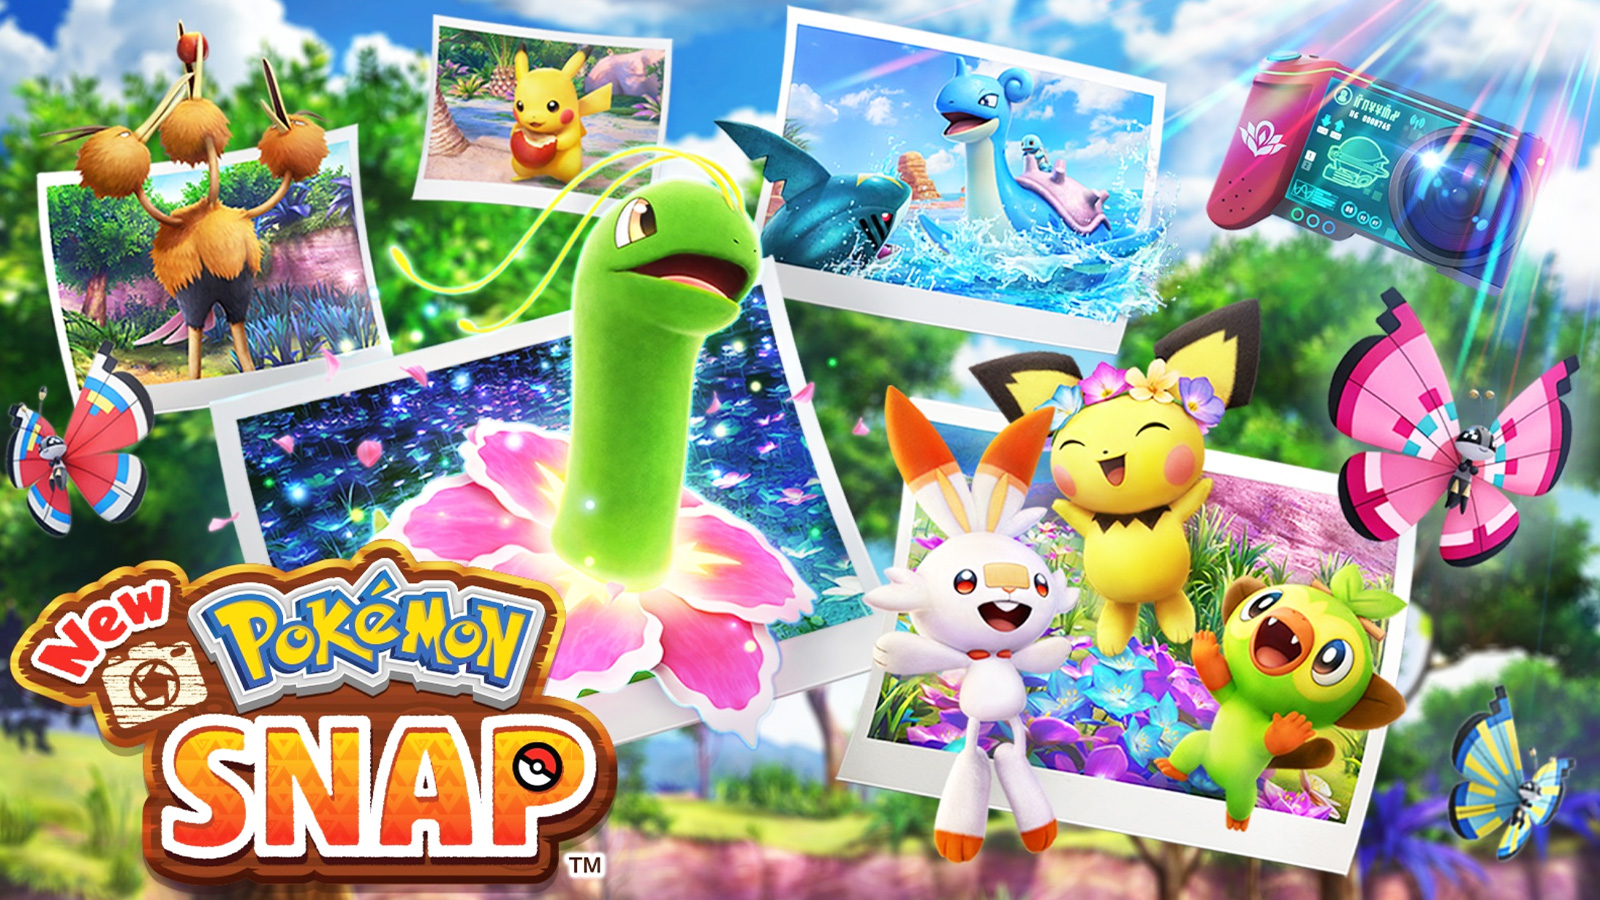 Screenshot of New Pokemon snap promotional.